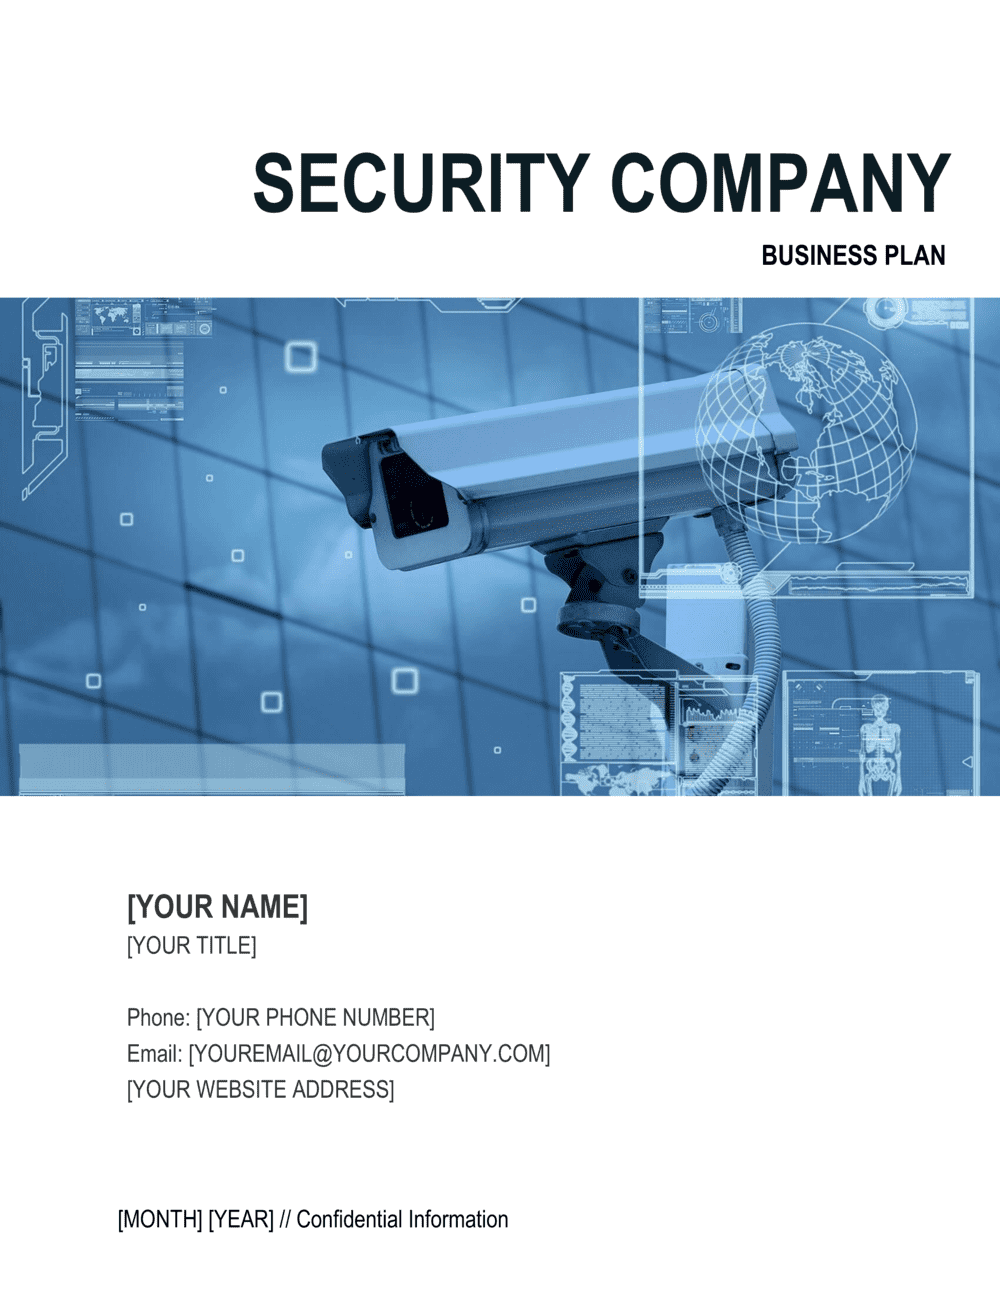 Business-in-a-Box's Security Company Business Plan Template